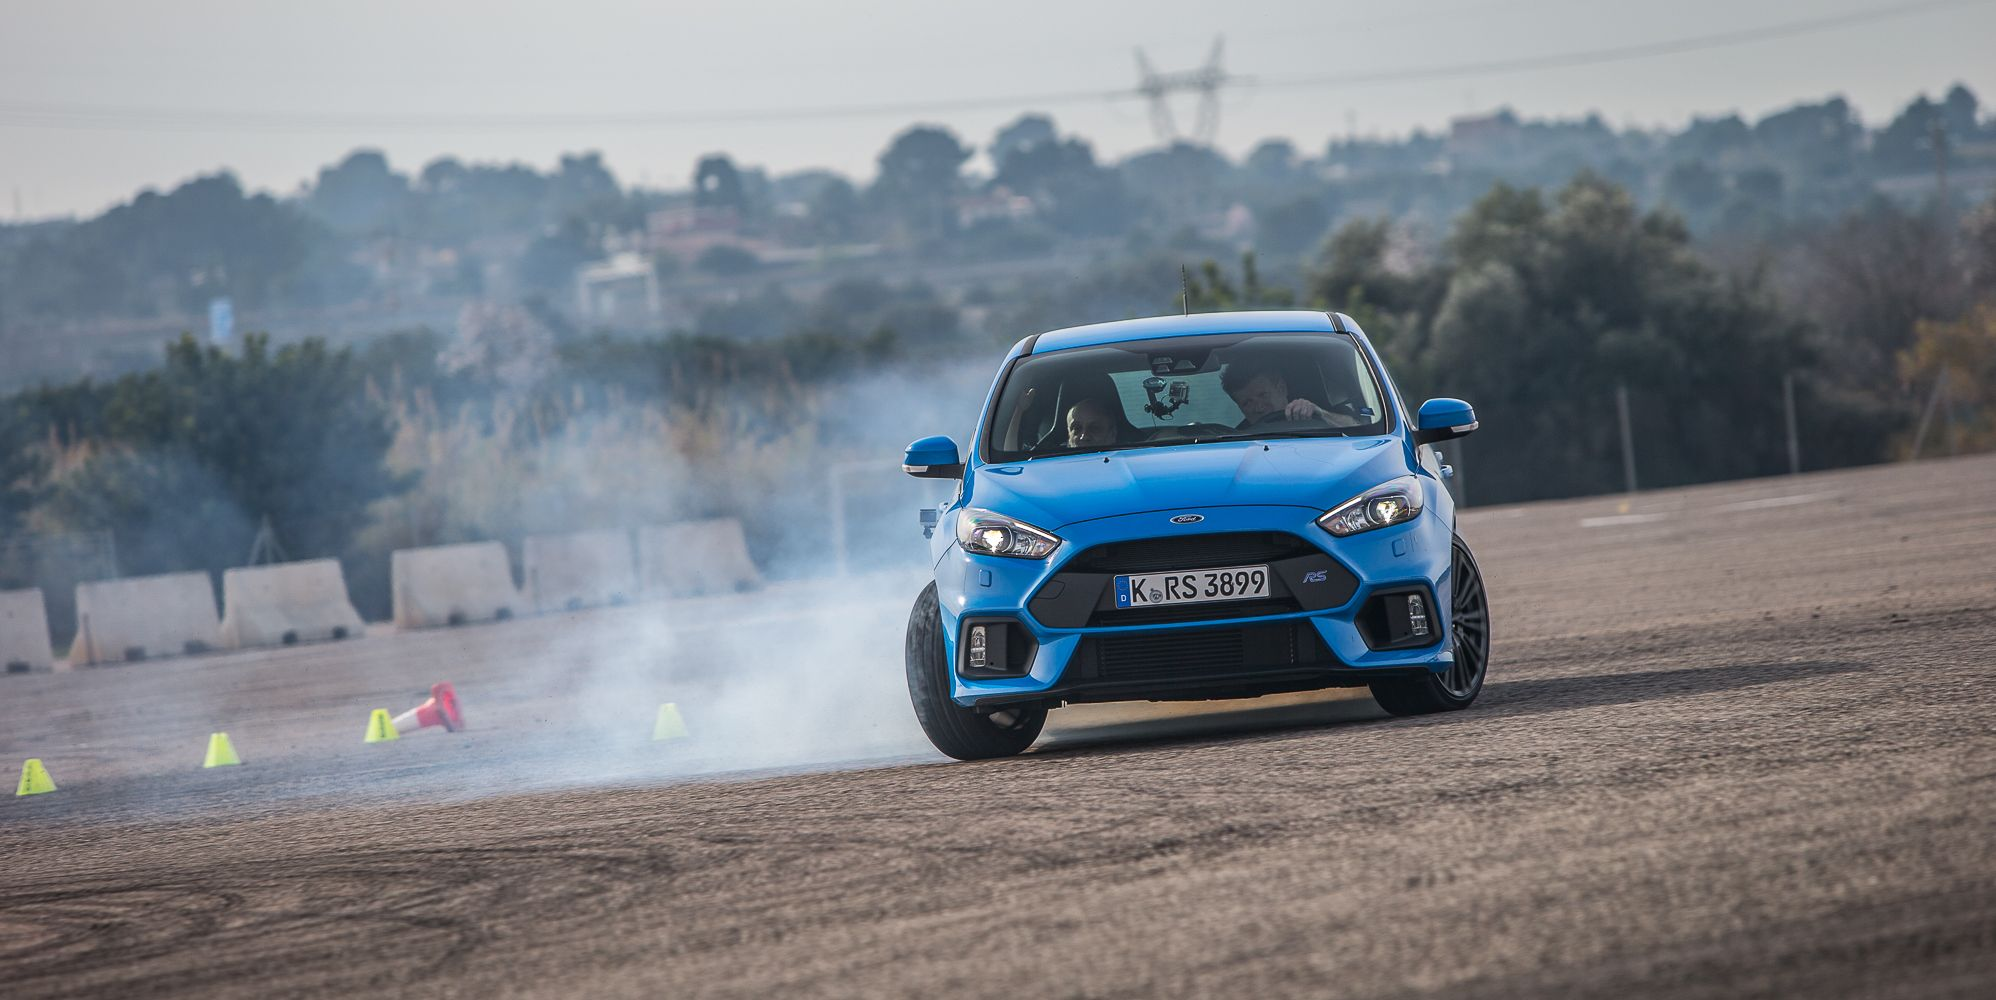 "<p>Now here's a controversy that's been blown way out of proportion: <a href=""http://quizcards.info/new-cars/car-technology/news/a29980/ford-focus-rs-drift-mode-australia/"" target=""_blank"">Australian safety advocates argue</a> that the Ford Focus RS's Drift Mode should be banned because it encourages bad behavior. The local media is <a href=""http://quizcards.info/new-cars/car-technology/news/a29993/ford-focus-rs-drift-australian-news/"" target=""_blank"">having a field day with this</a>, and well, it's all a little ridiculous.</p>"